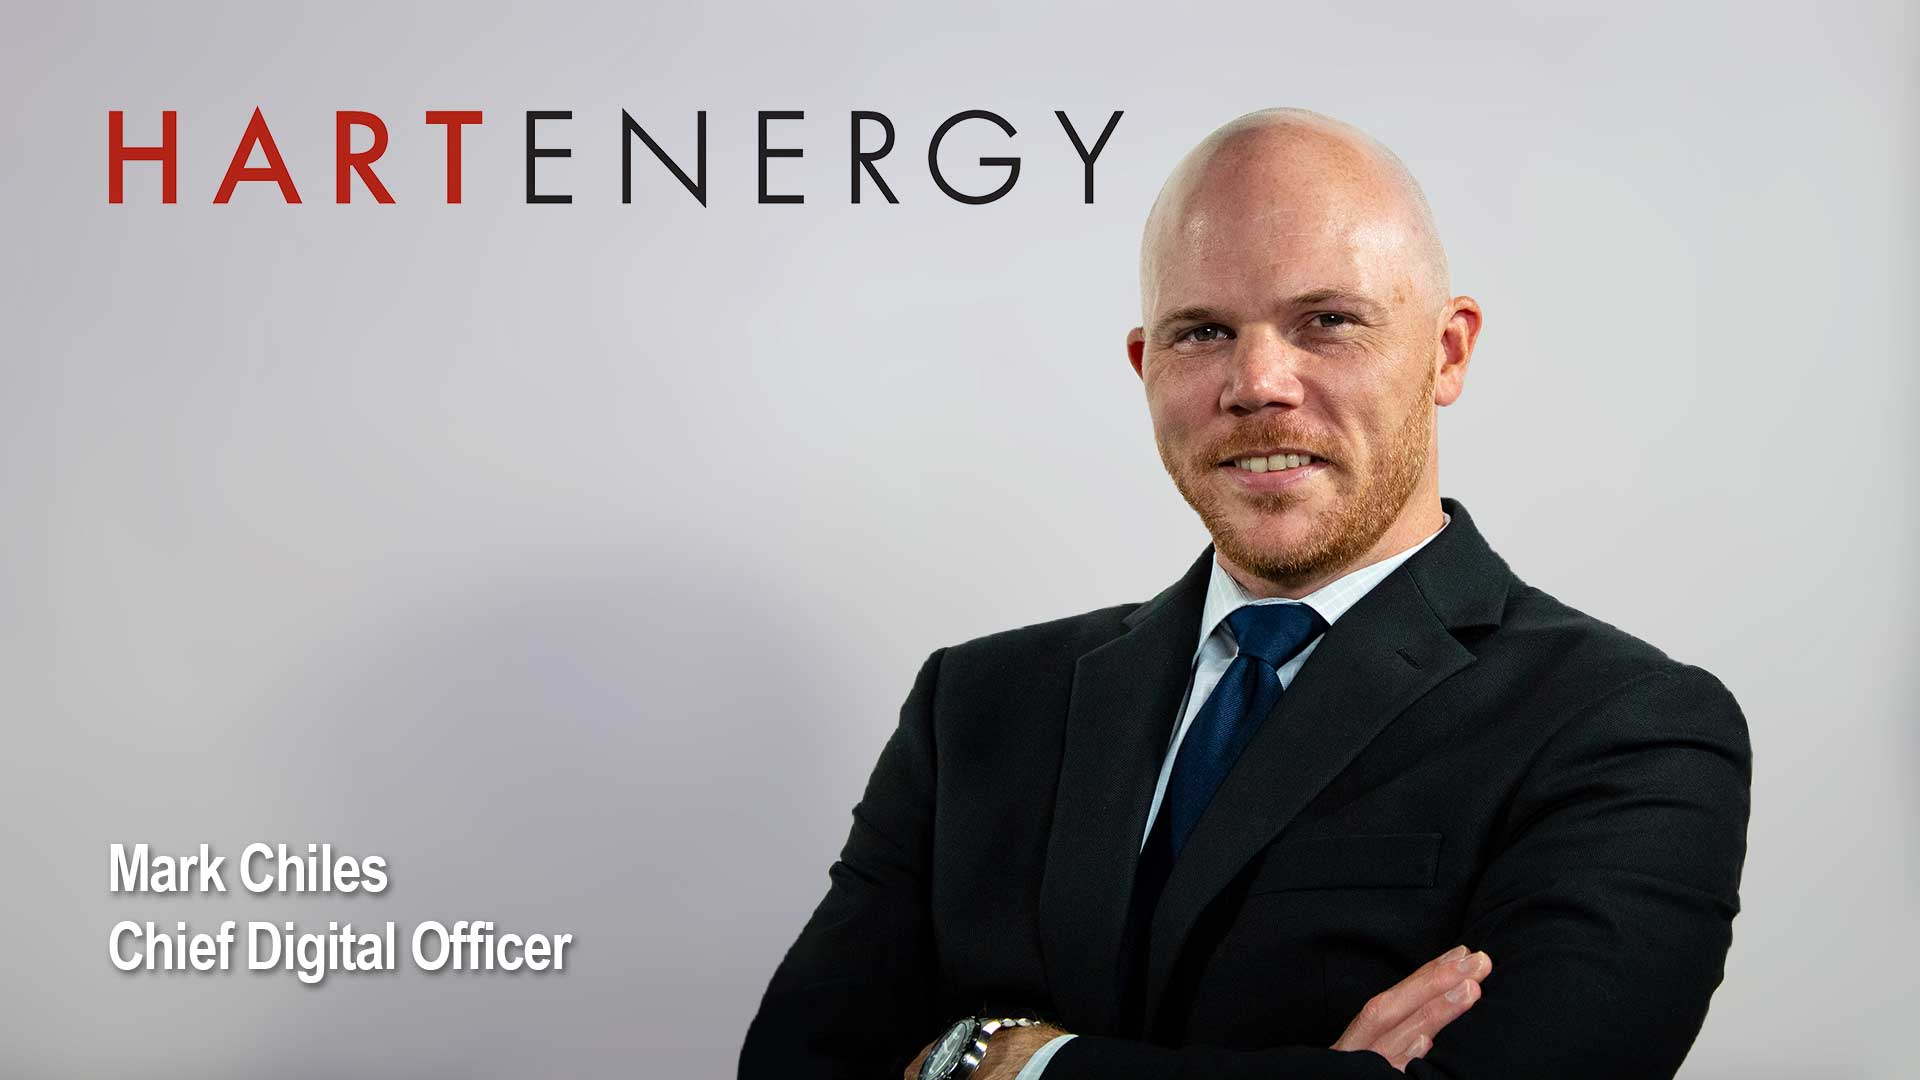 Photograph of Mark Chiles, chief digital officer at Hart Energy